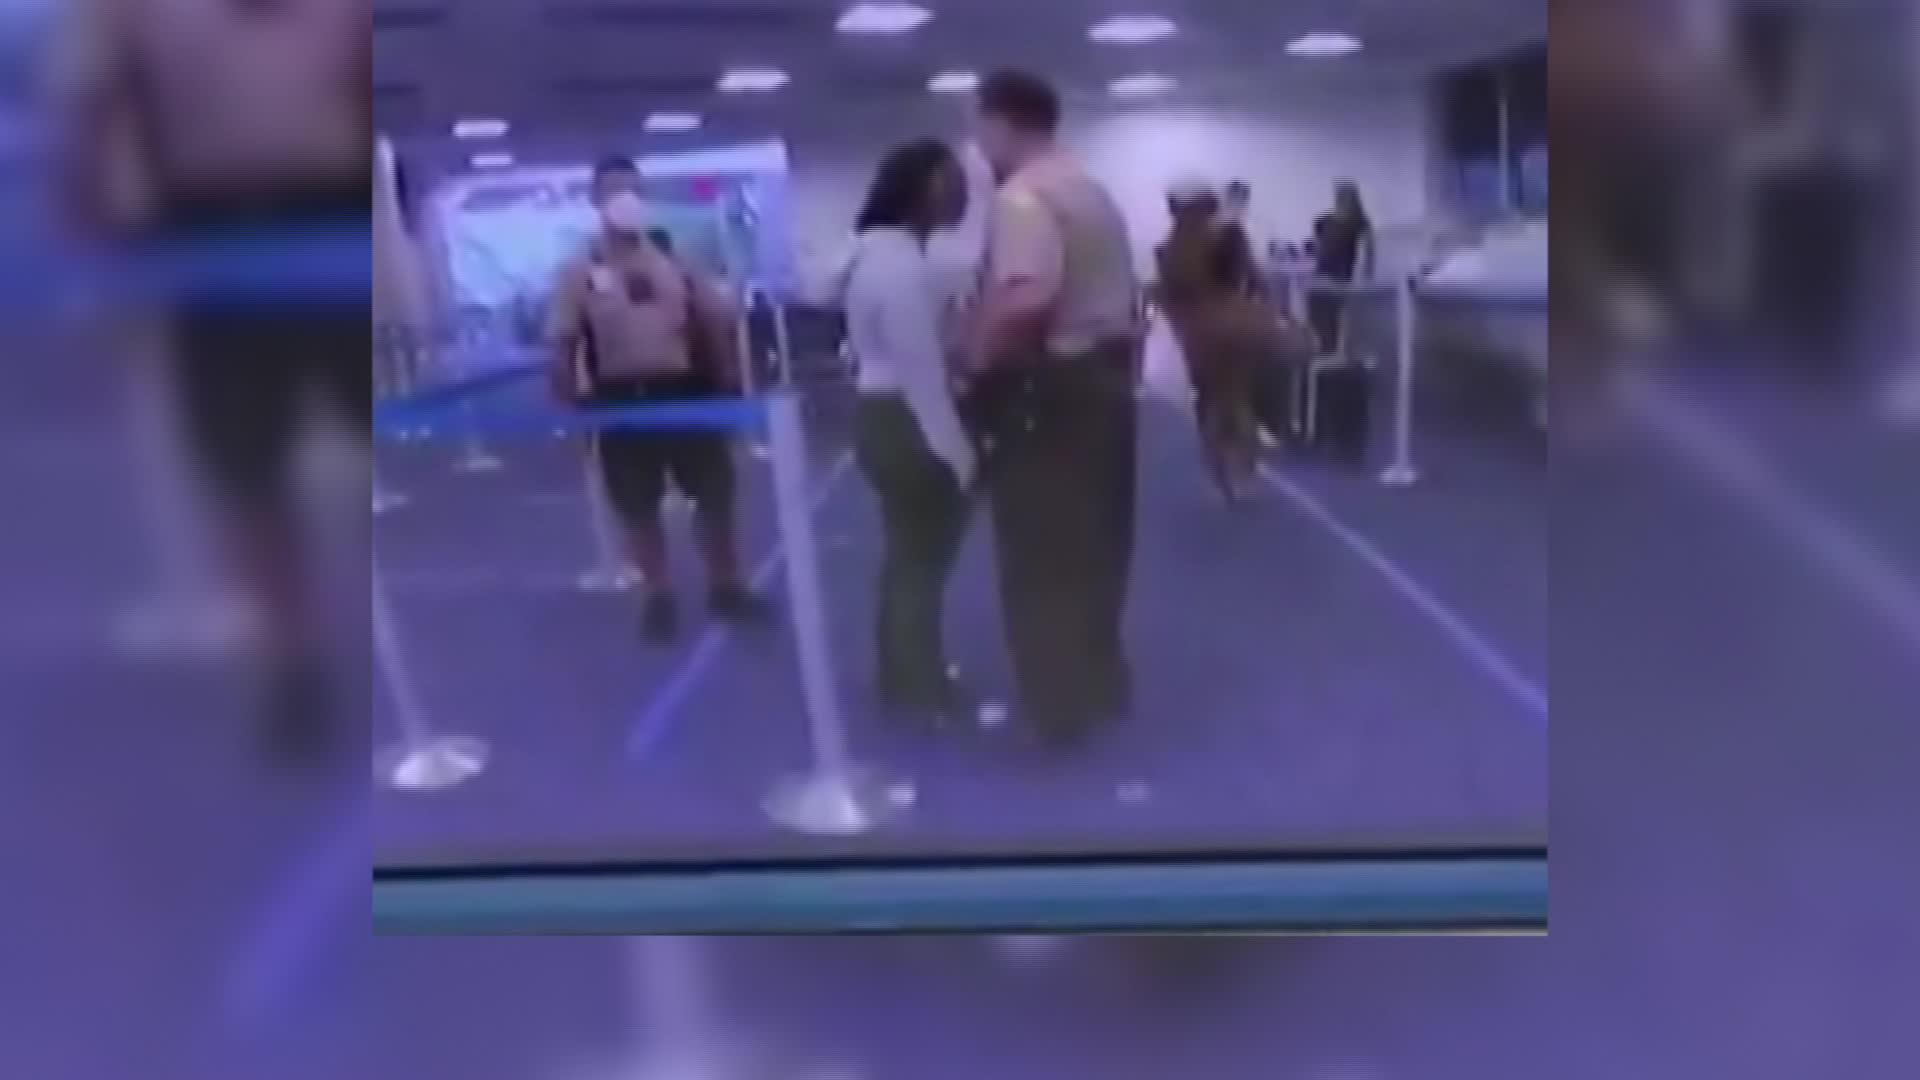 A Miami-Dade officer who struck a woman at an airport will be terminated, officials say